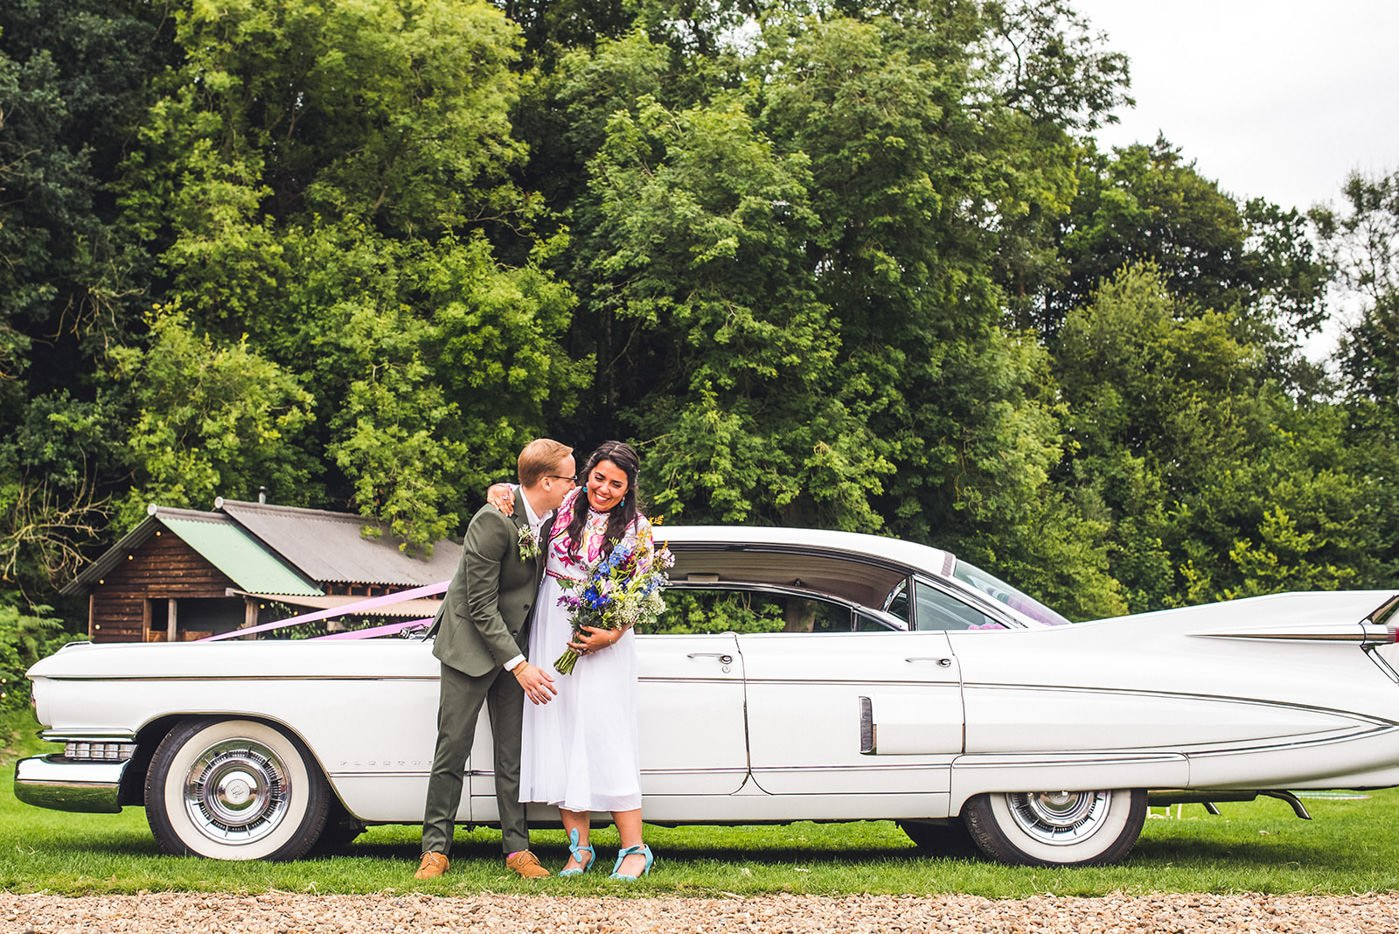 Bride and groom with vintage car advice for newly engaged couples